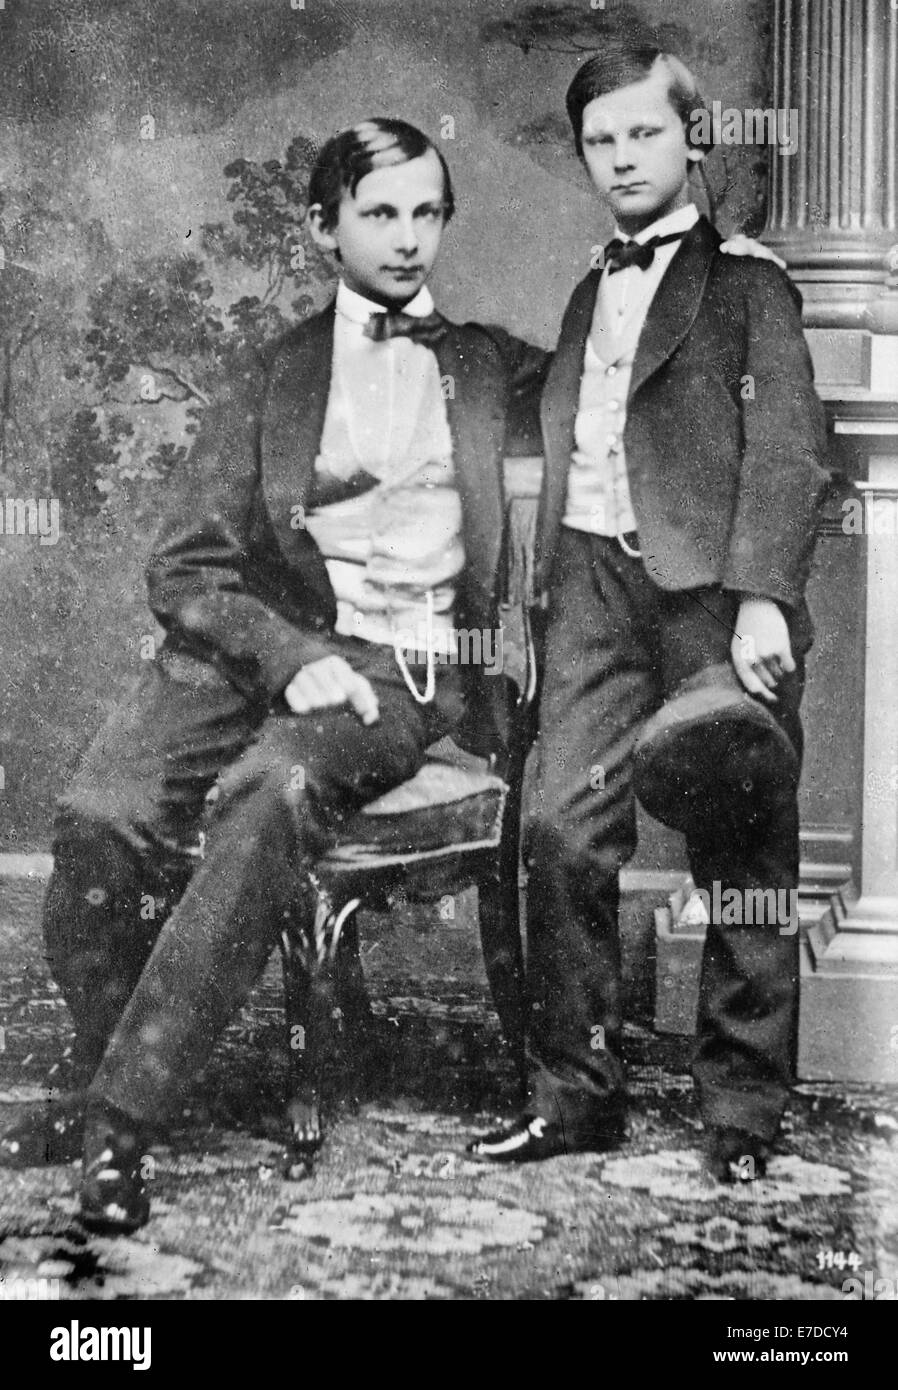 Ludwig II (1845-1886) who was King of Bavaria from 1864 to 1886, with his brother Otto (1848-1916), who succeeded - Stock Image